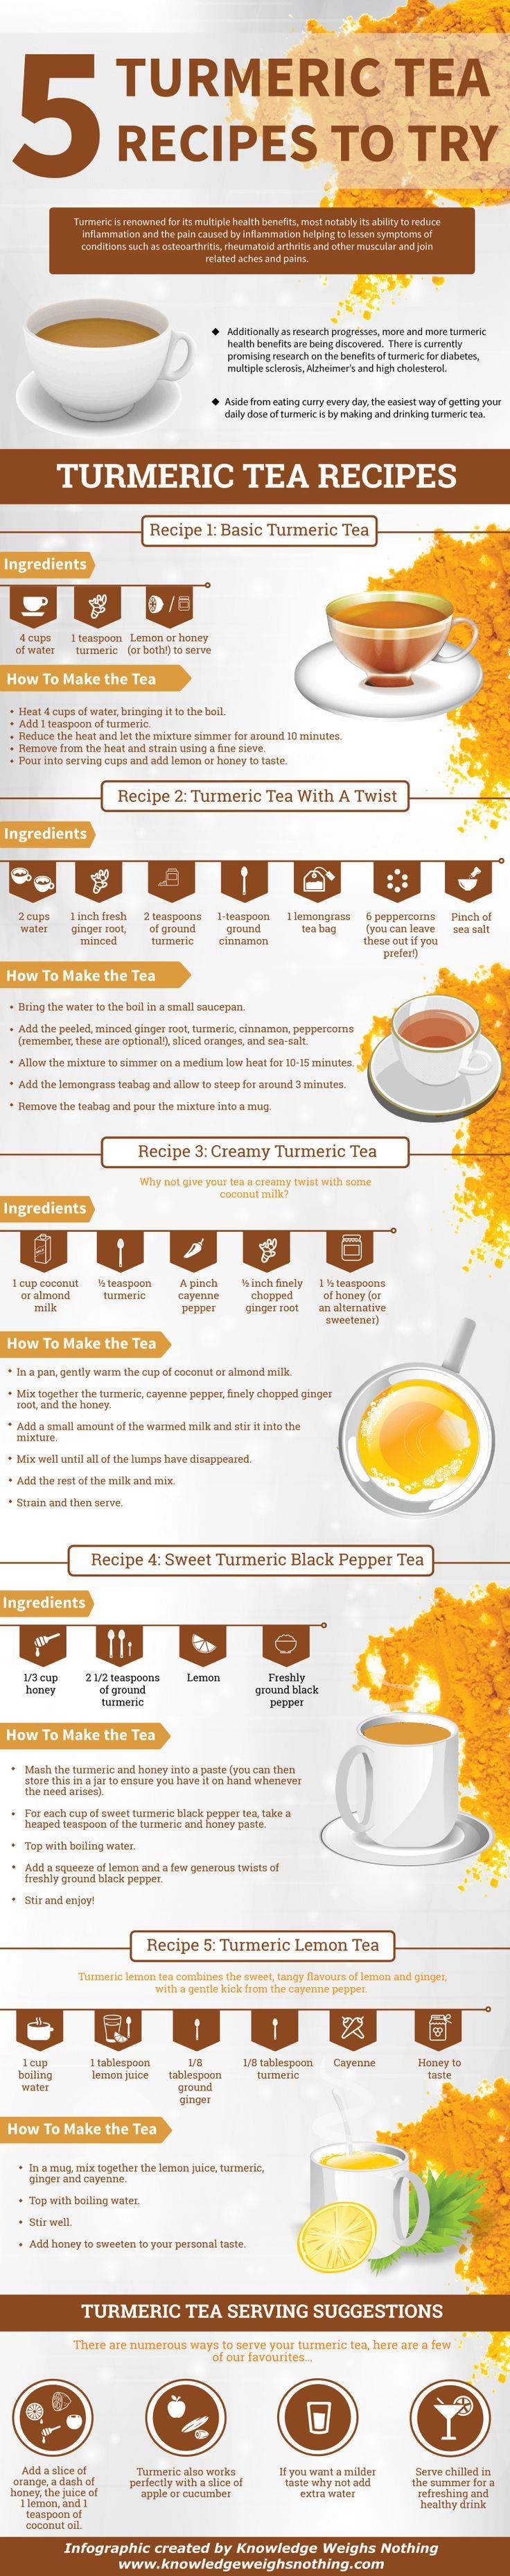 How to make turmeric tea infographic. Find out more here: https://knowledgeweighsnothing.com/how-to-make-turmeric-pain-relief-tea/